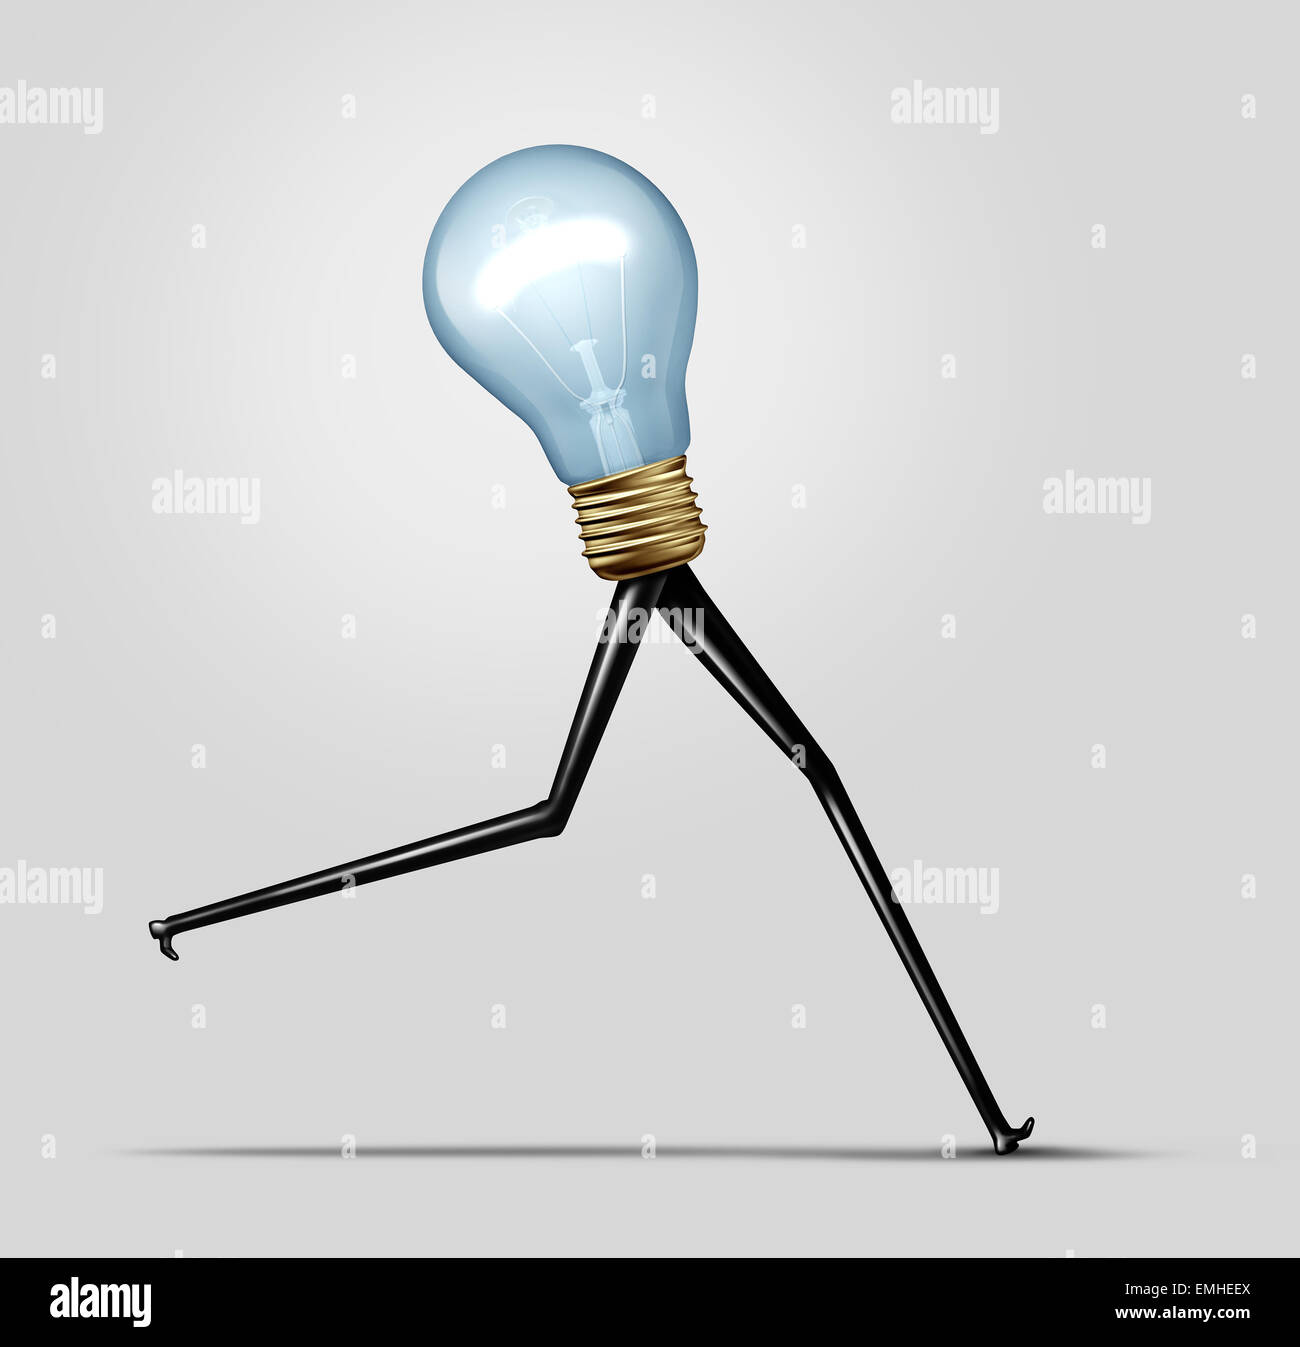 Creative energy and quick thinking business concept as a glowing bright light bulb with long legs running fast as - Stock Image